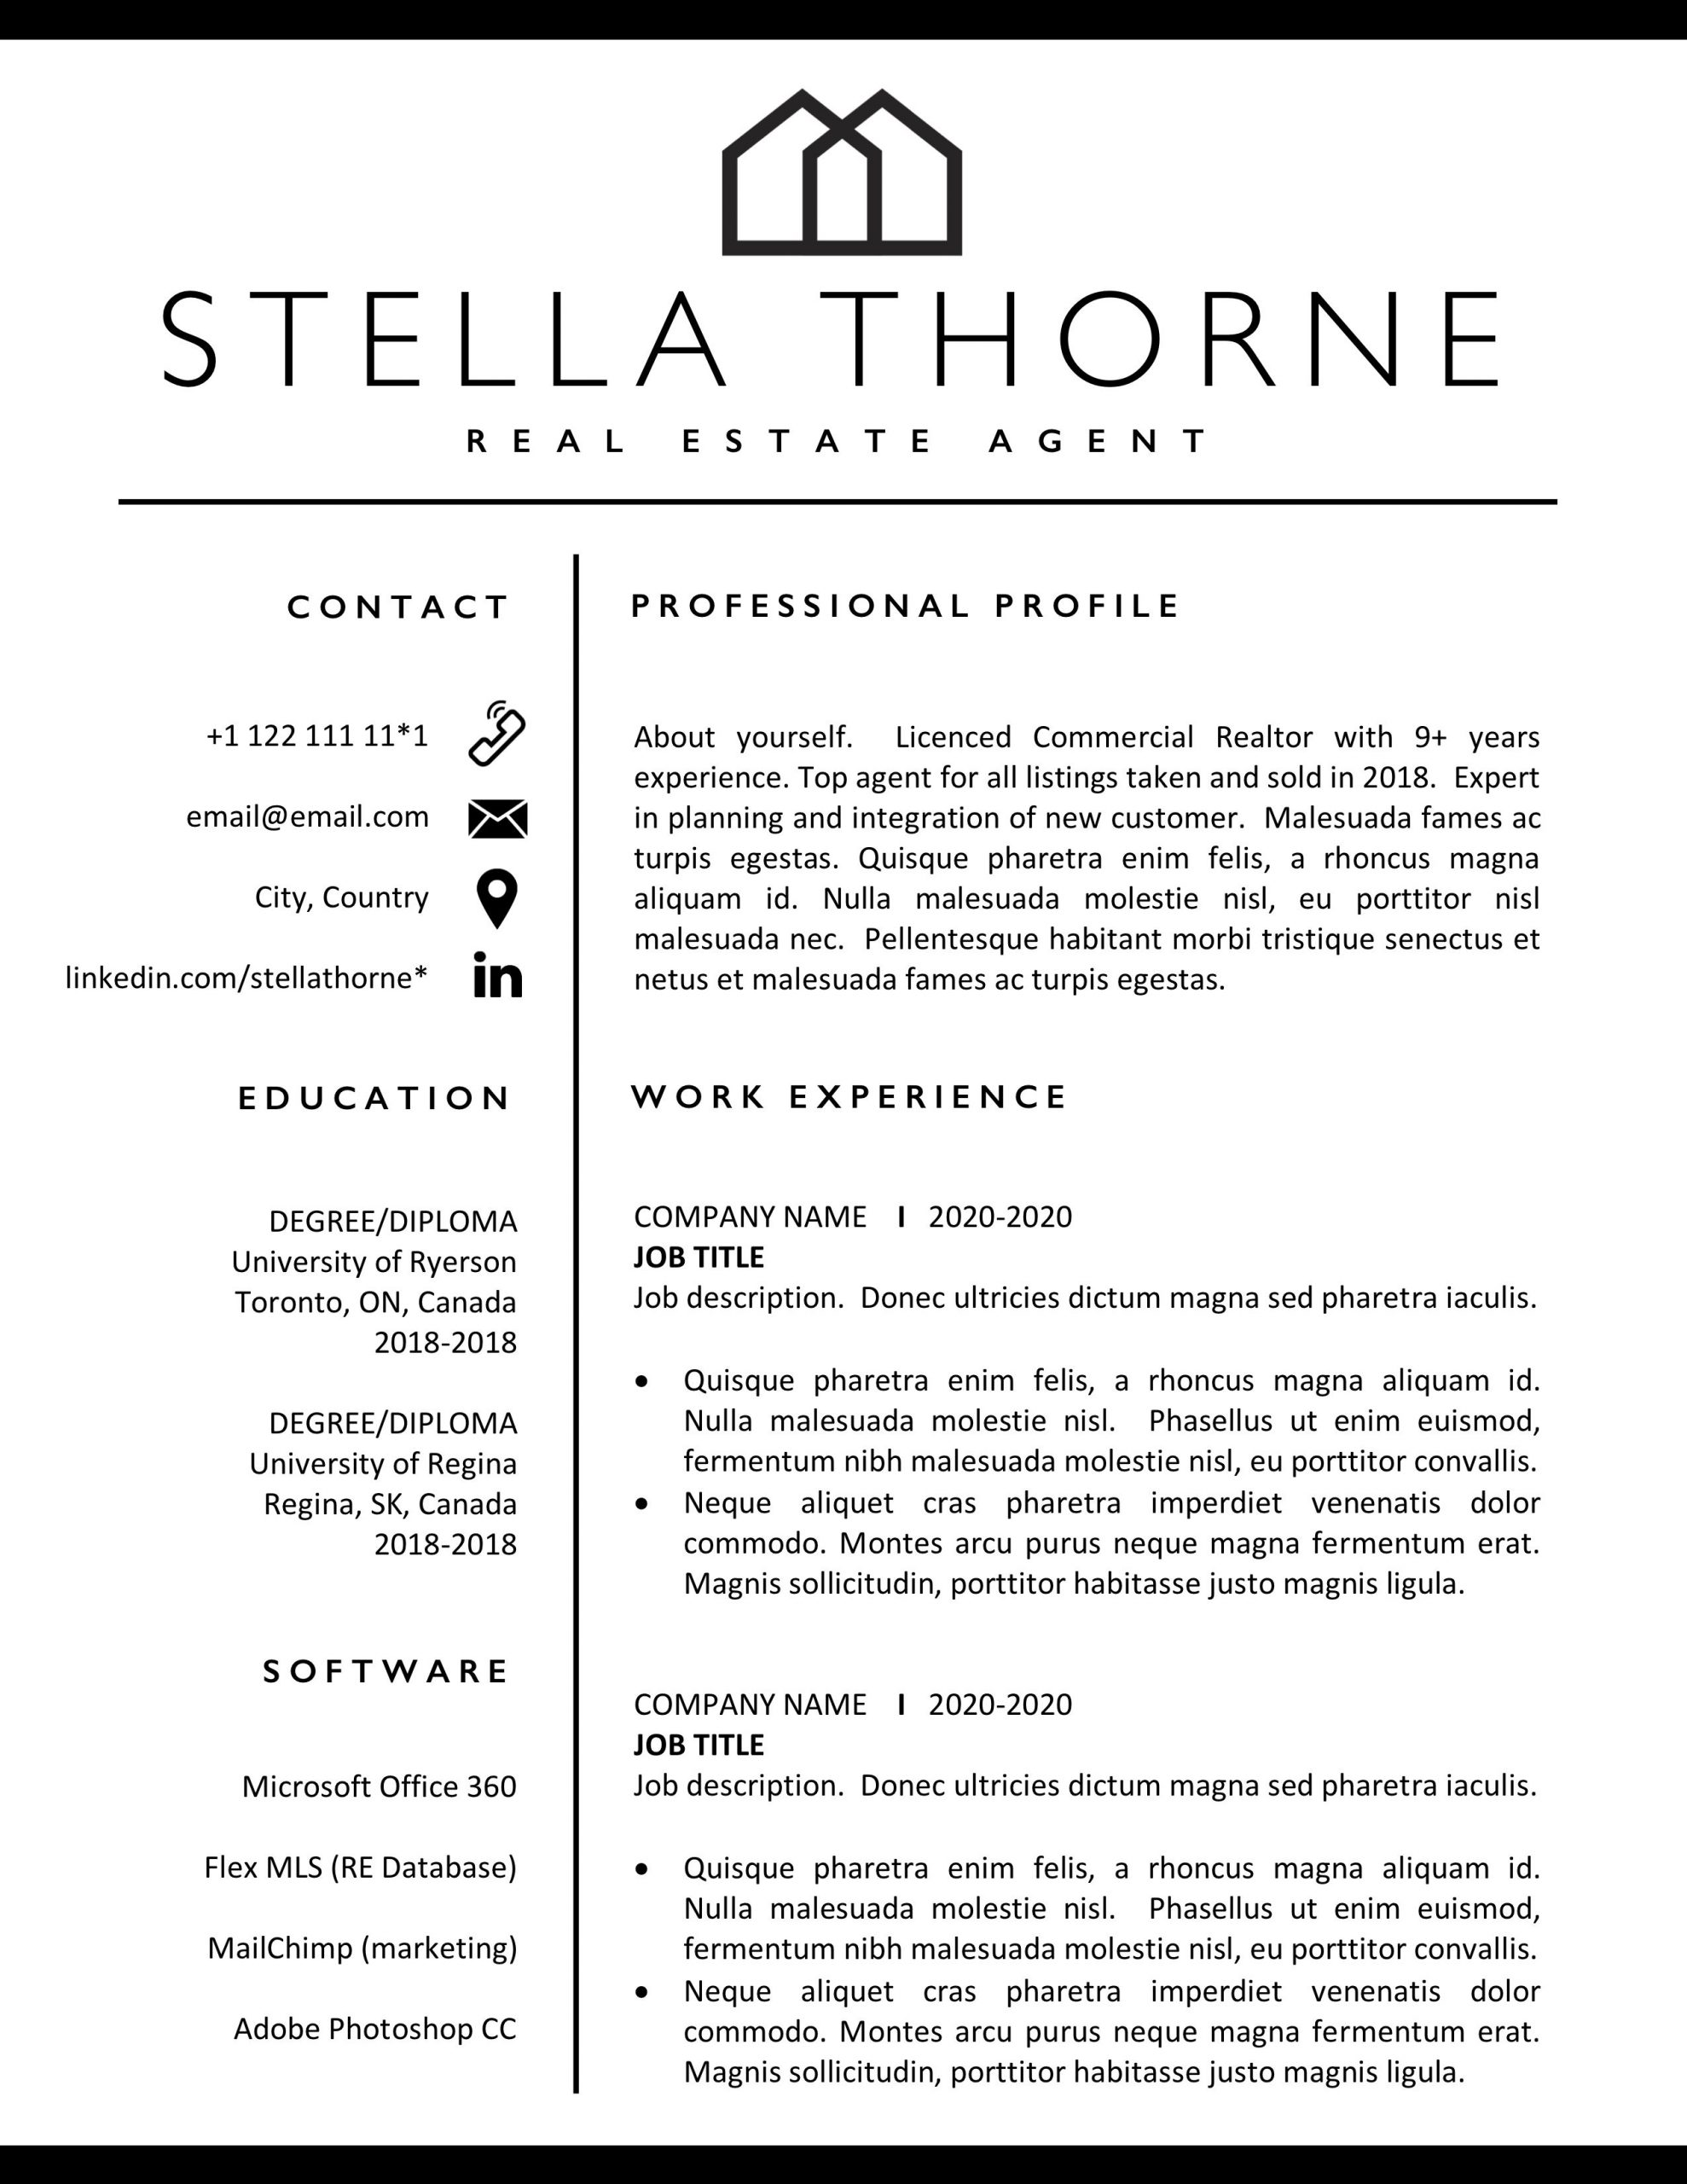 realtor resume free templates format for estate job of agent template scaled self Resume Resume Format For Real Estate Job